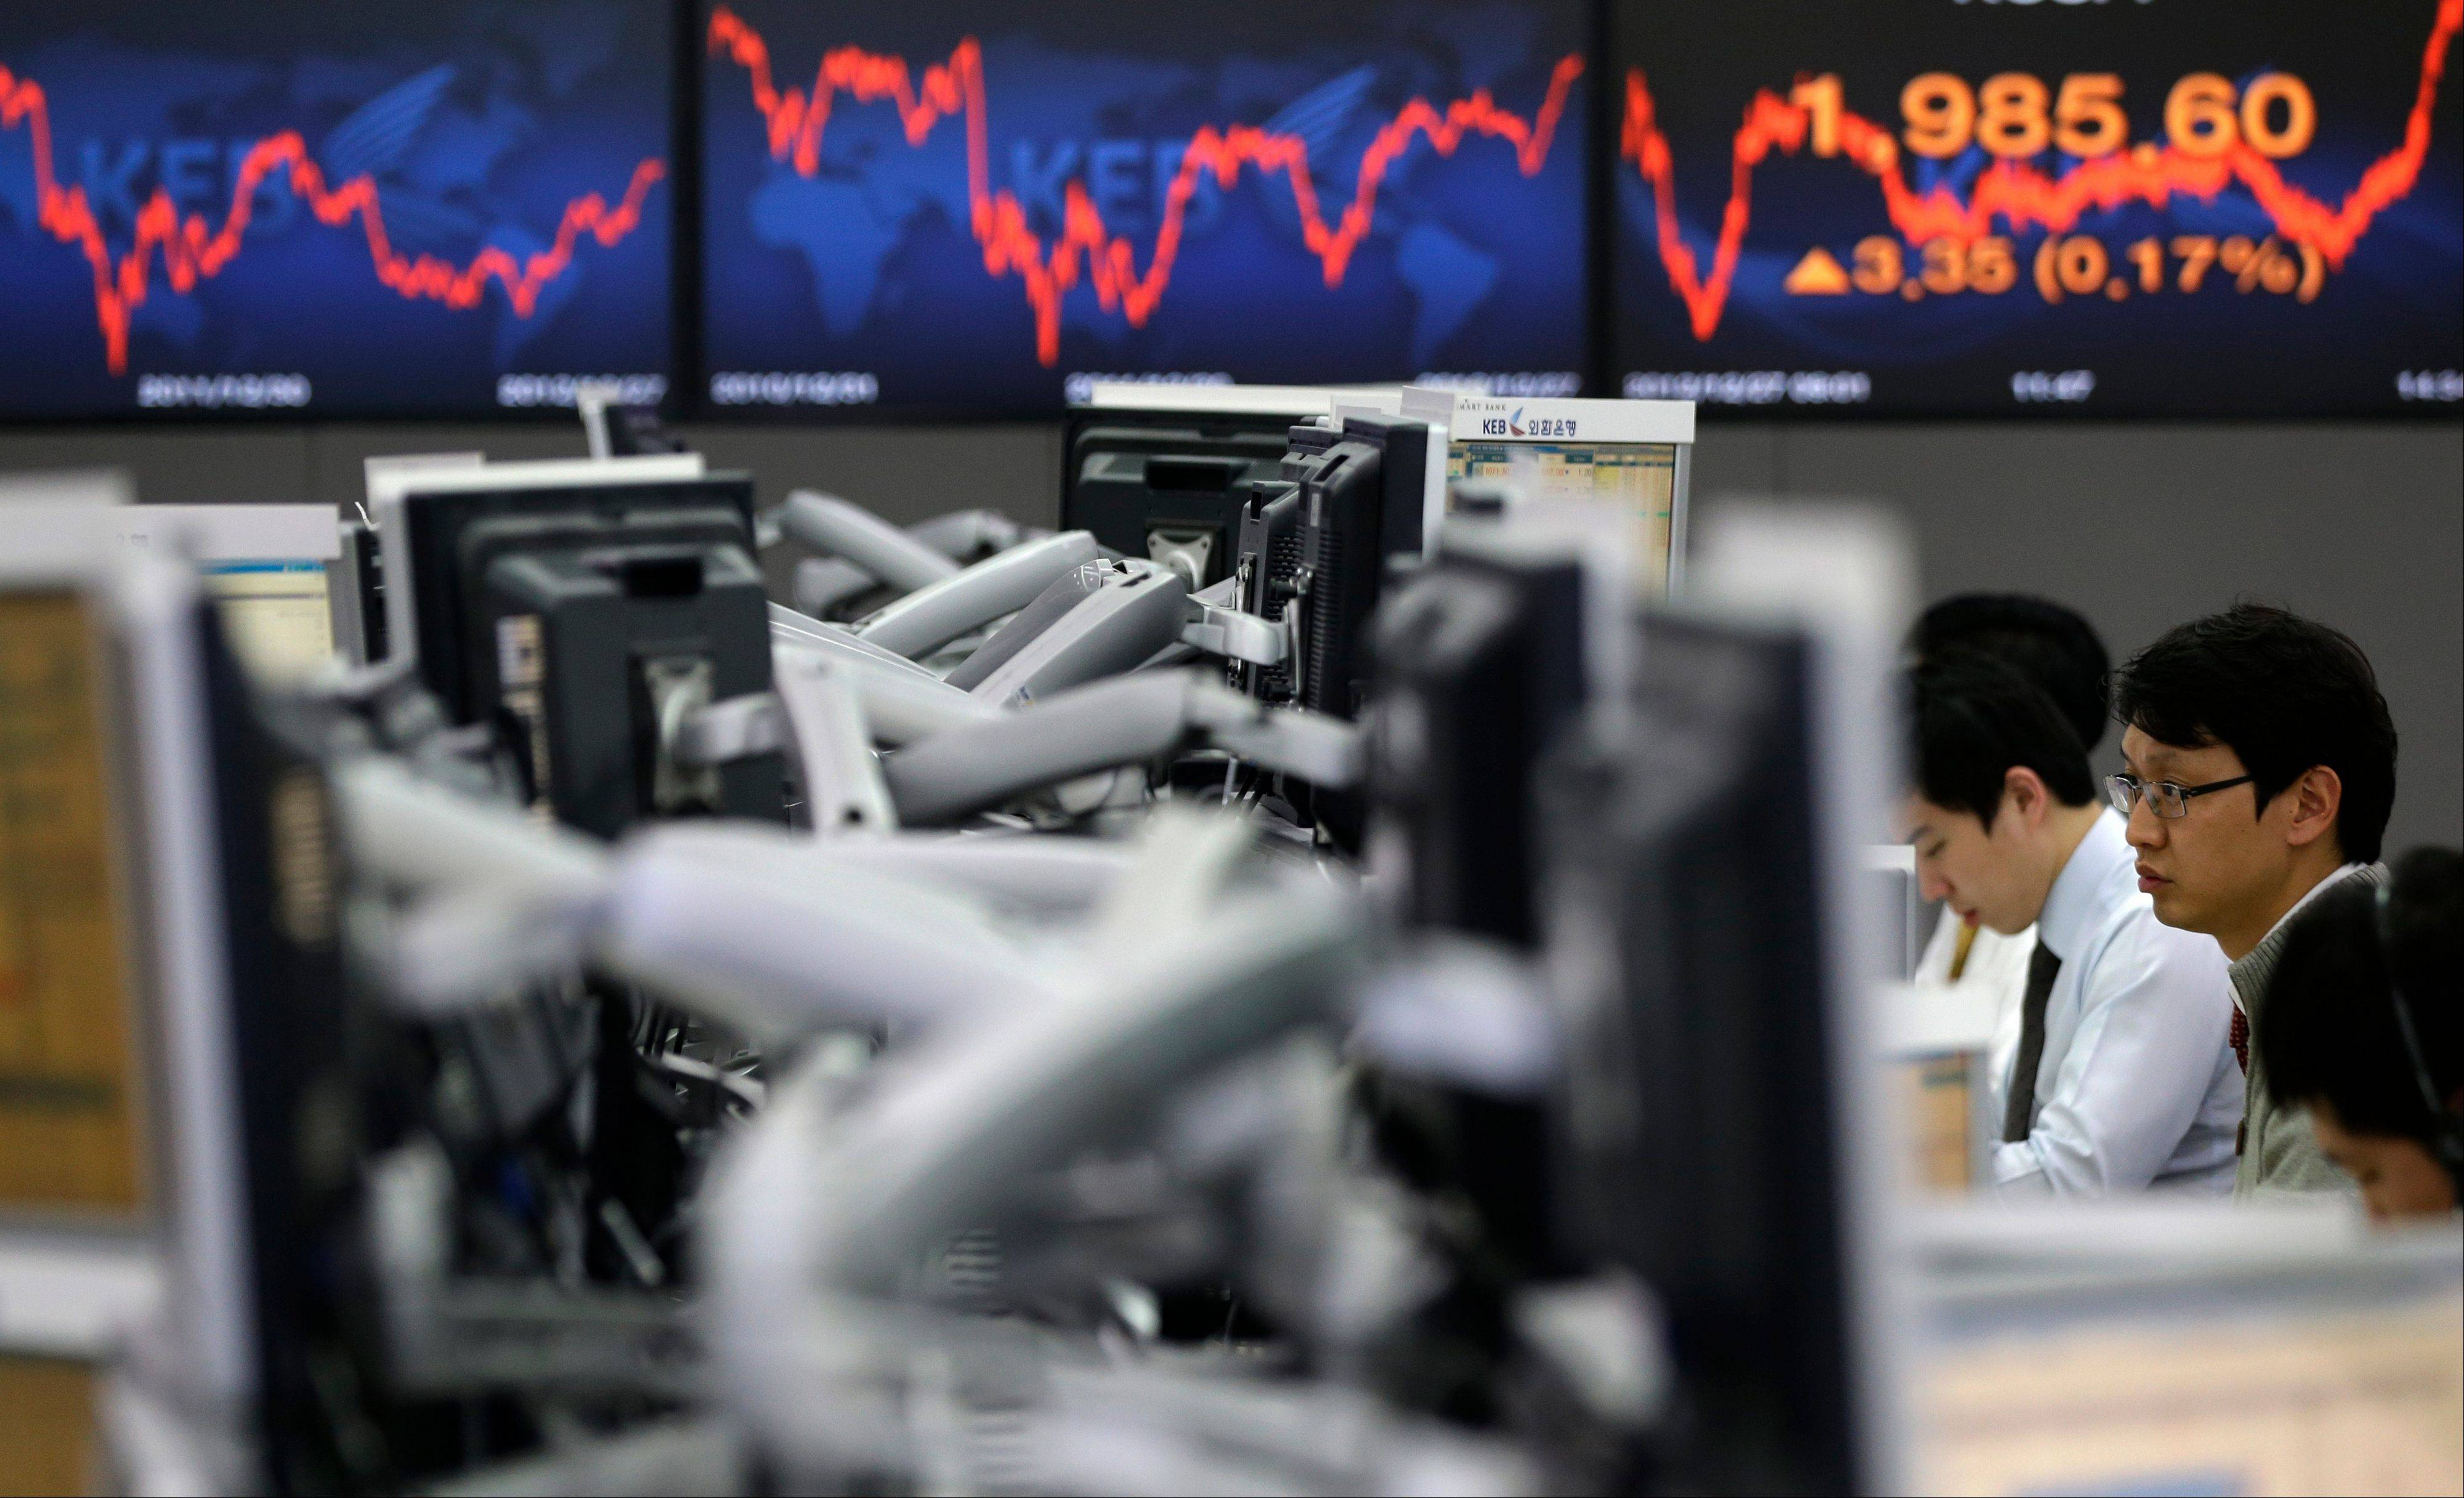 A currency trader looks at the computer monitors near a screen showing the Korea Composite Stock Price Index (KOSPI), right, at the foreign exchange dealing room of the Korea Exchange Bank headquarters in Seoul, South Korea, Thursday, Dec. 27, 2012. Most of Asian markets rose Thursday on optimism a new Japanese government will stimulate its sluggish economy.